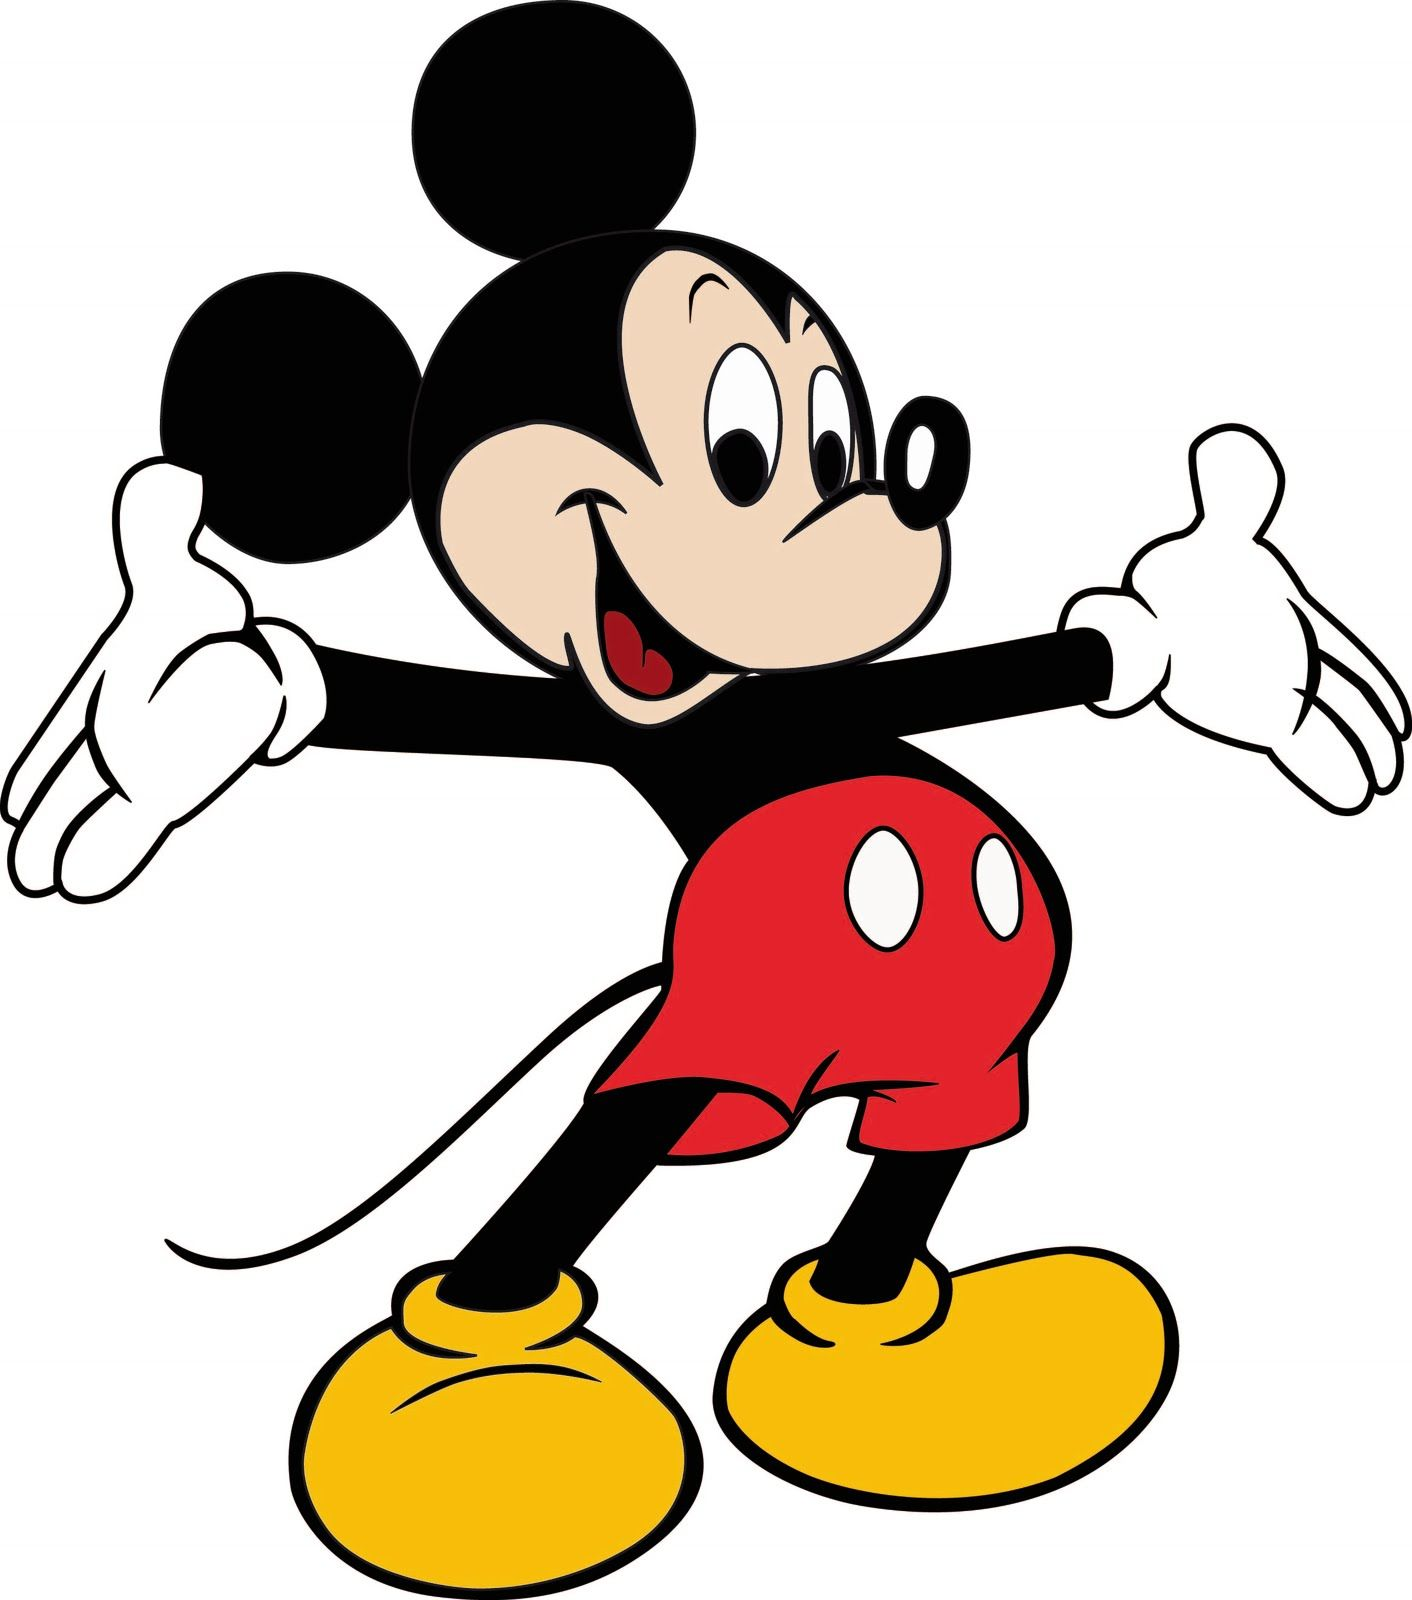 Mickey mouse high resolution. Clipart free large images